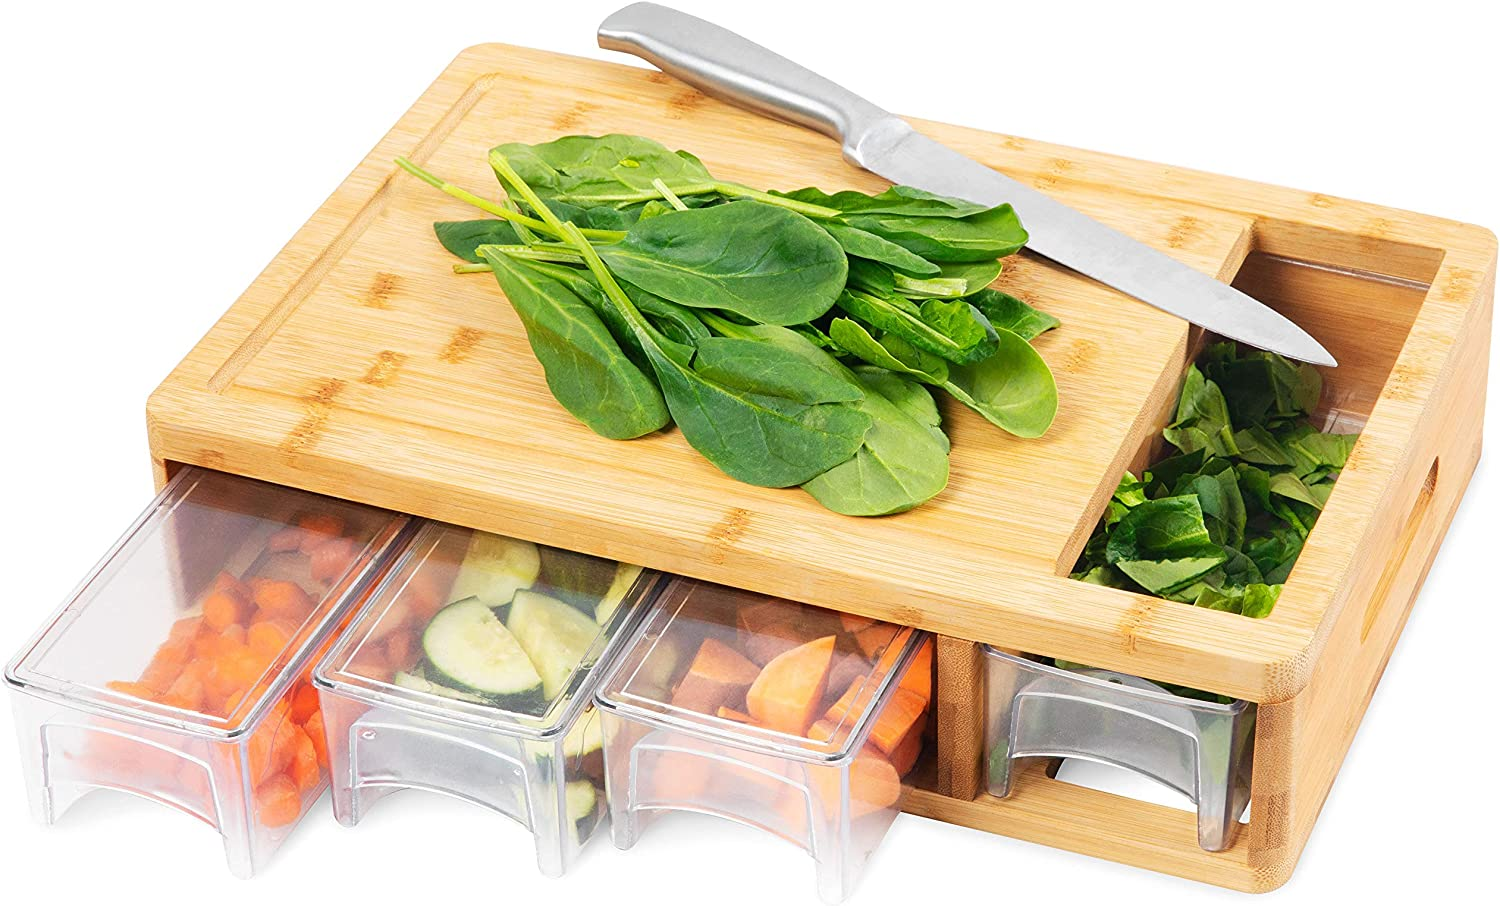 Bamboo Cutting Board With Trays and LIDS. Multi-functional: 4 draws can be used as PREP DISHES or for STORAGE.